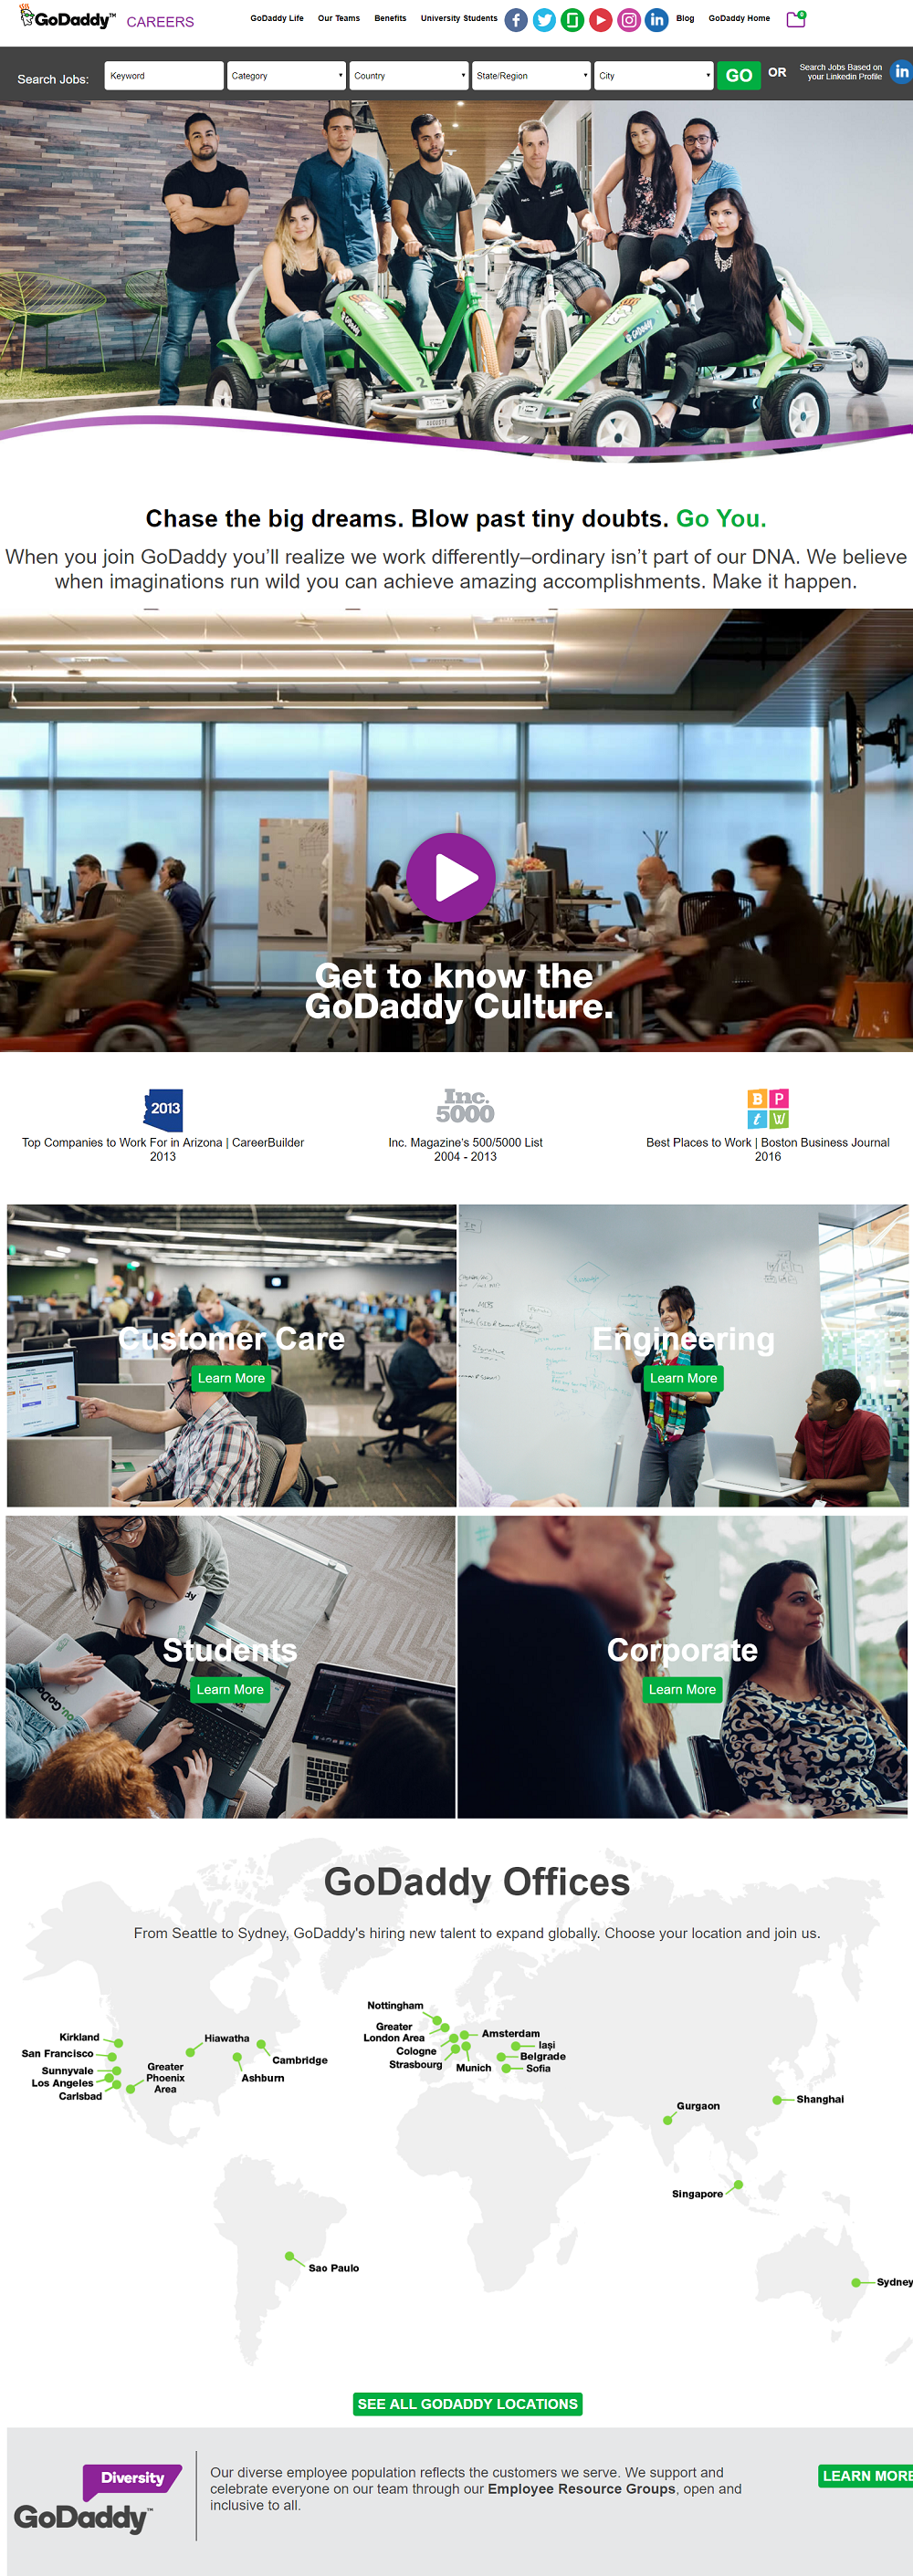 GoDaddy Company Career Page